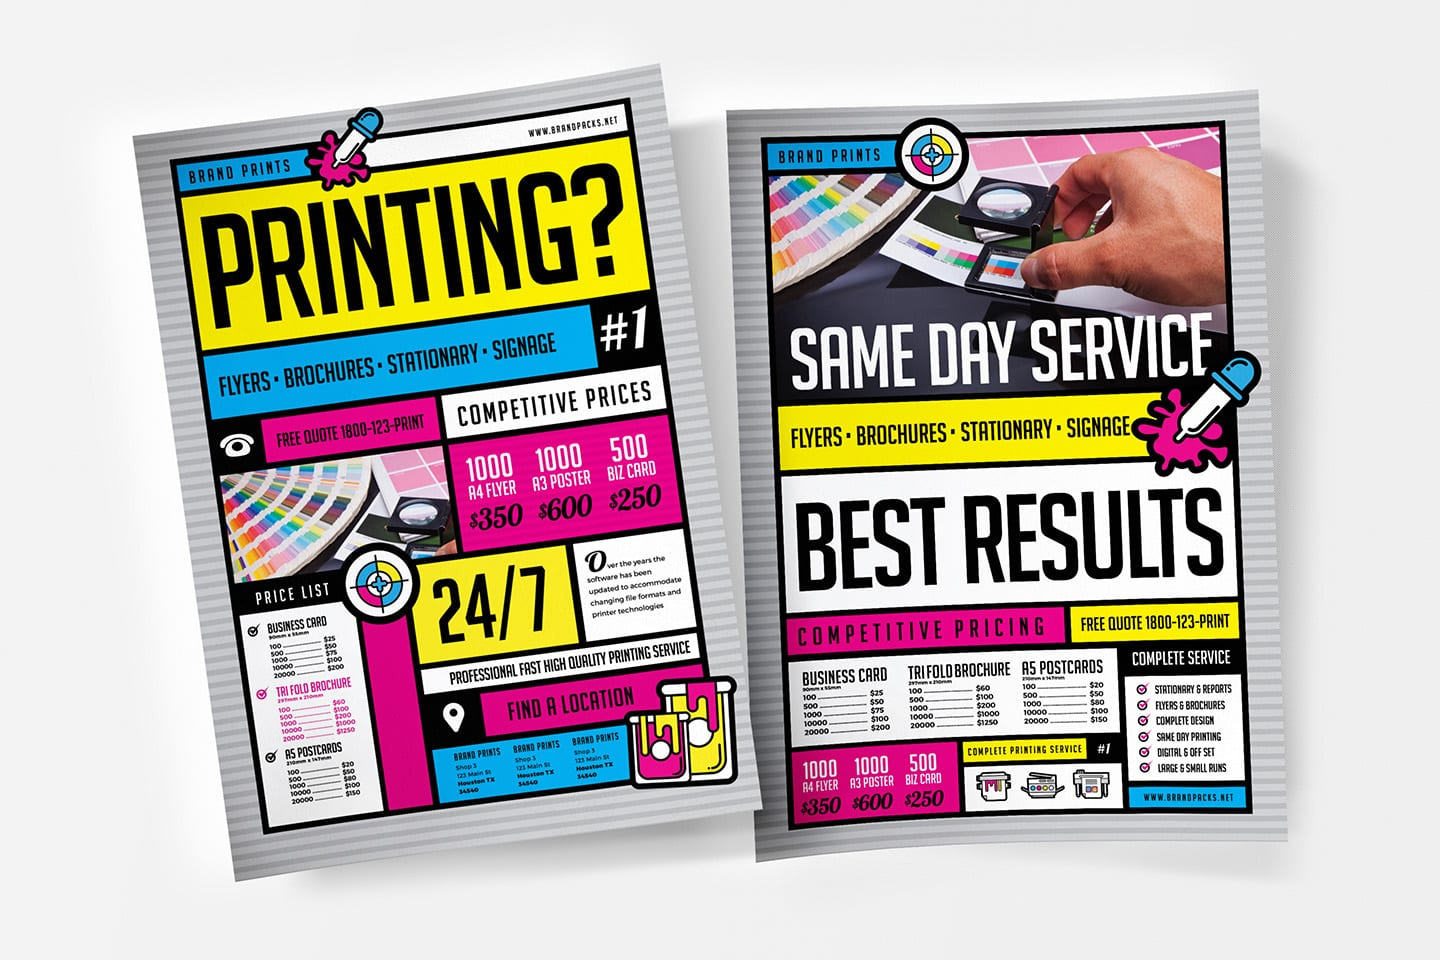 Free Print Shop Templates for Local Printing Services - BrandPacks